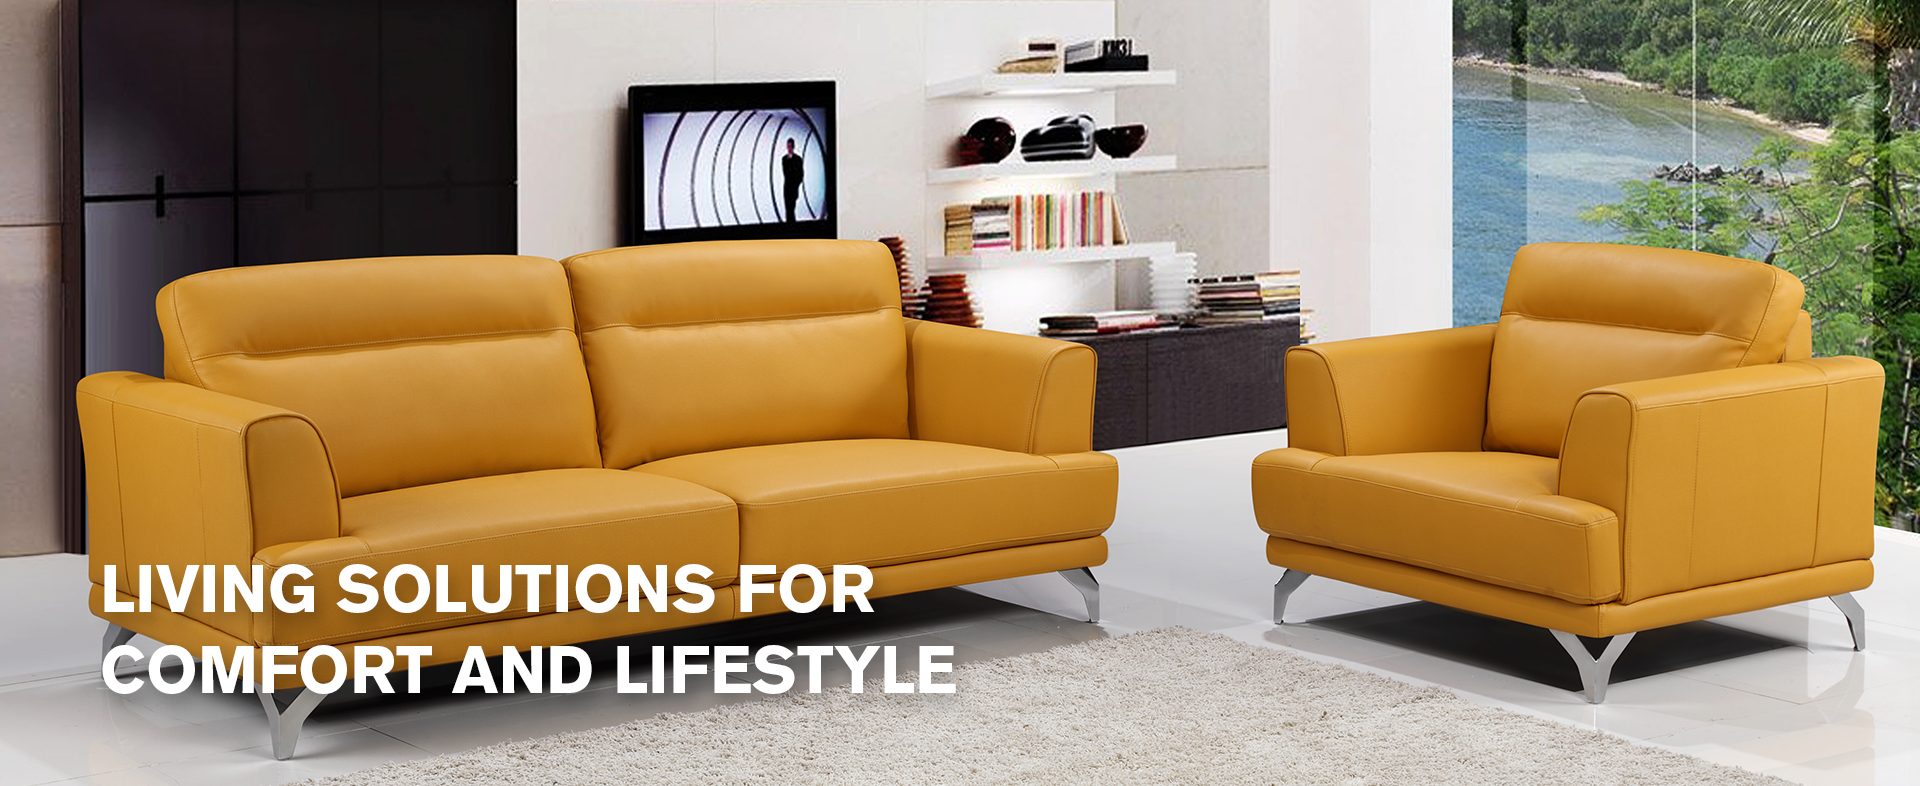 Home Solutions Furniture 28 Images Home And Office Automation Solutions In Dubai Lighting